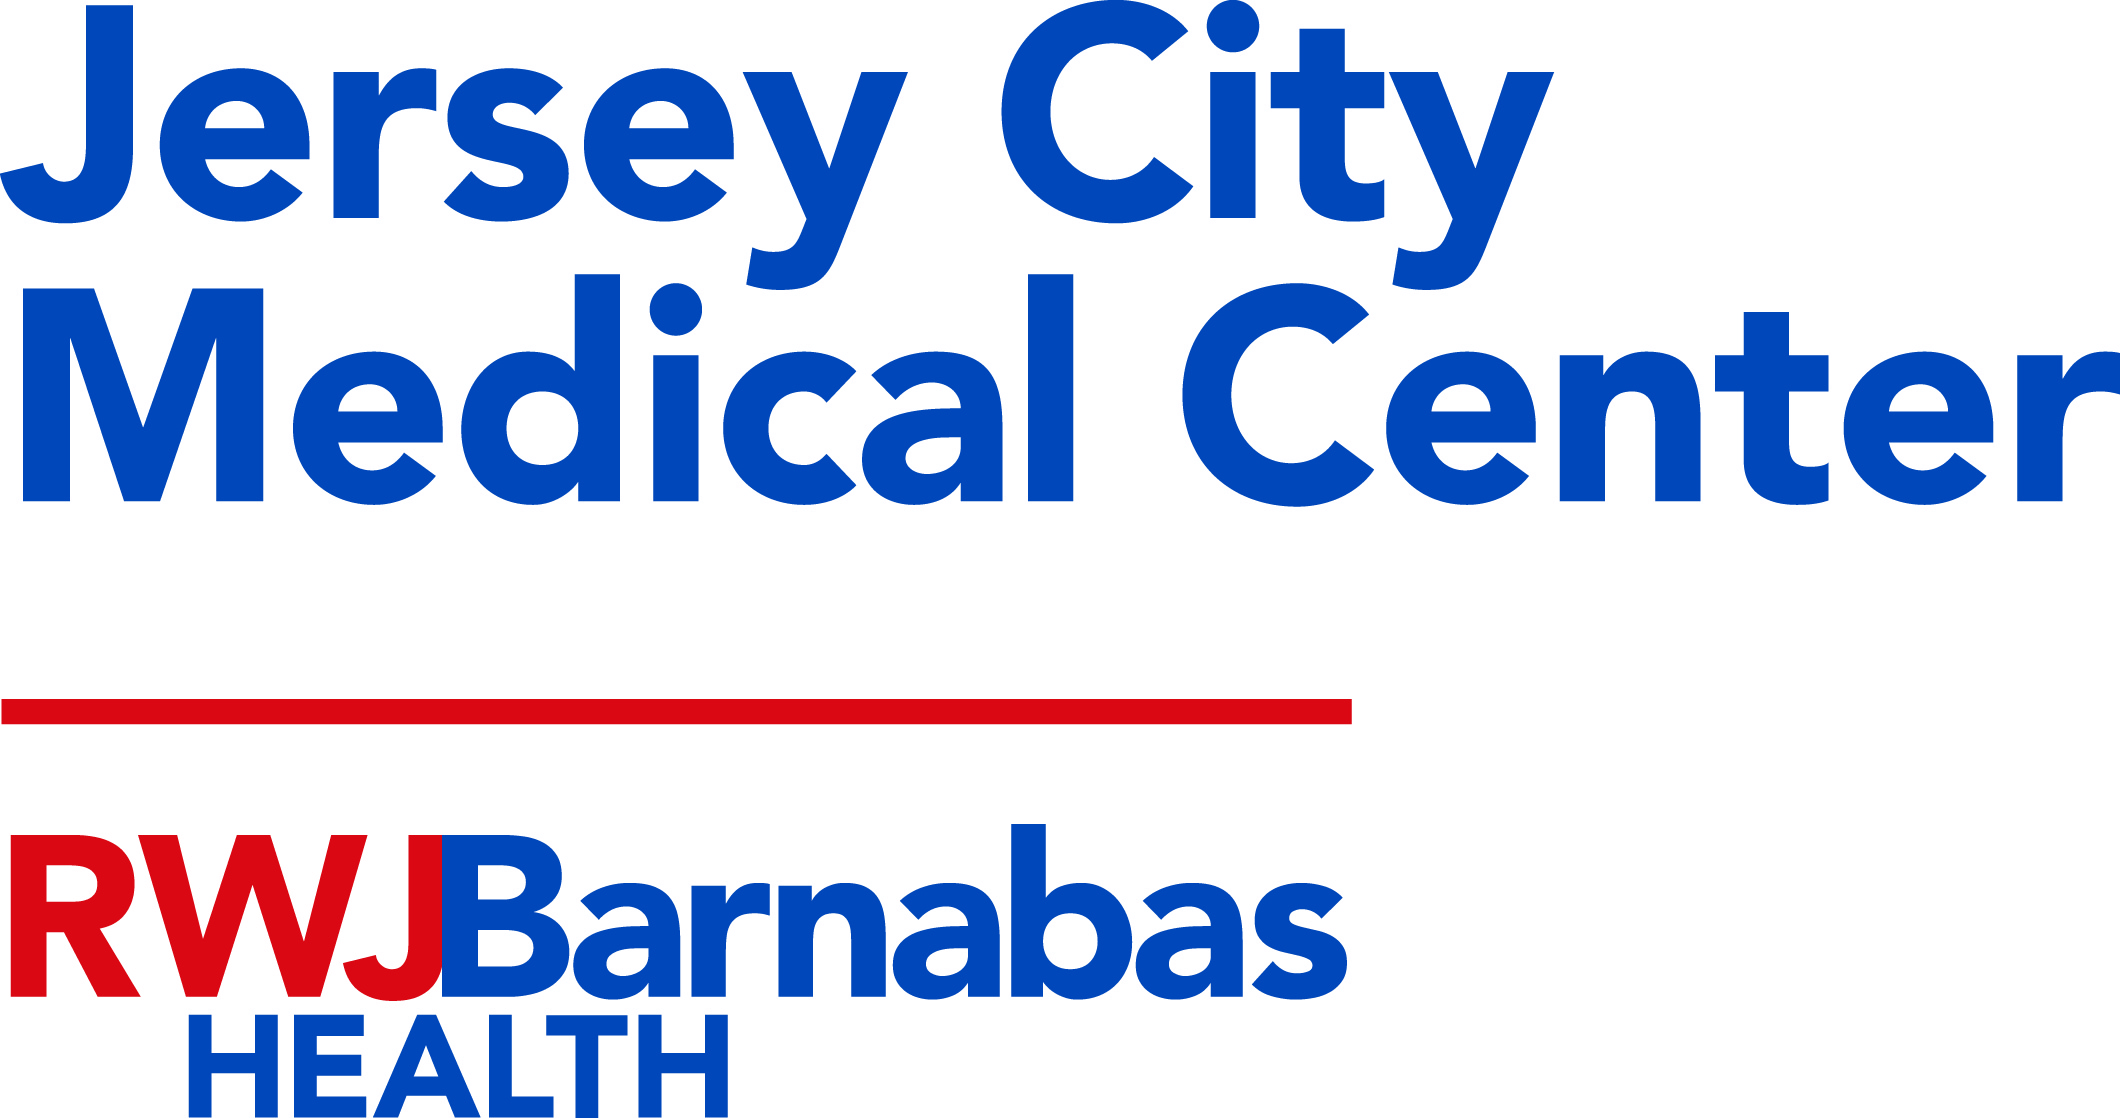 Jersey City Medical Center- Counseling and Testing Site/ Center for Comprehensive Care